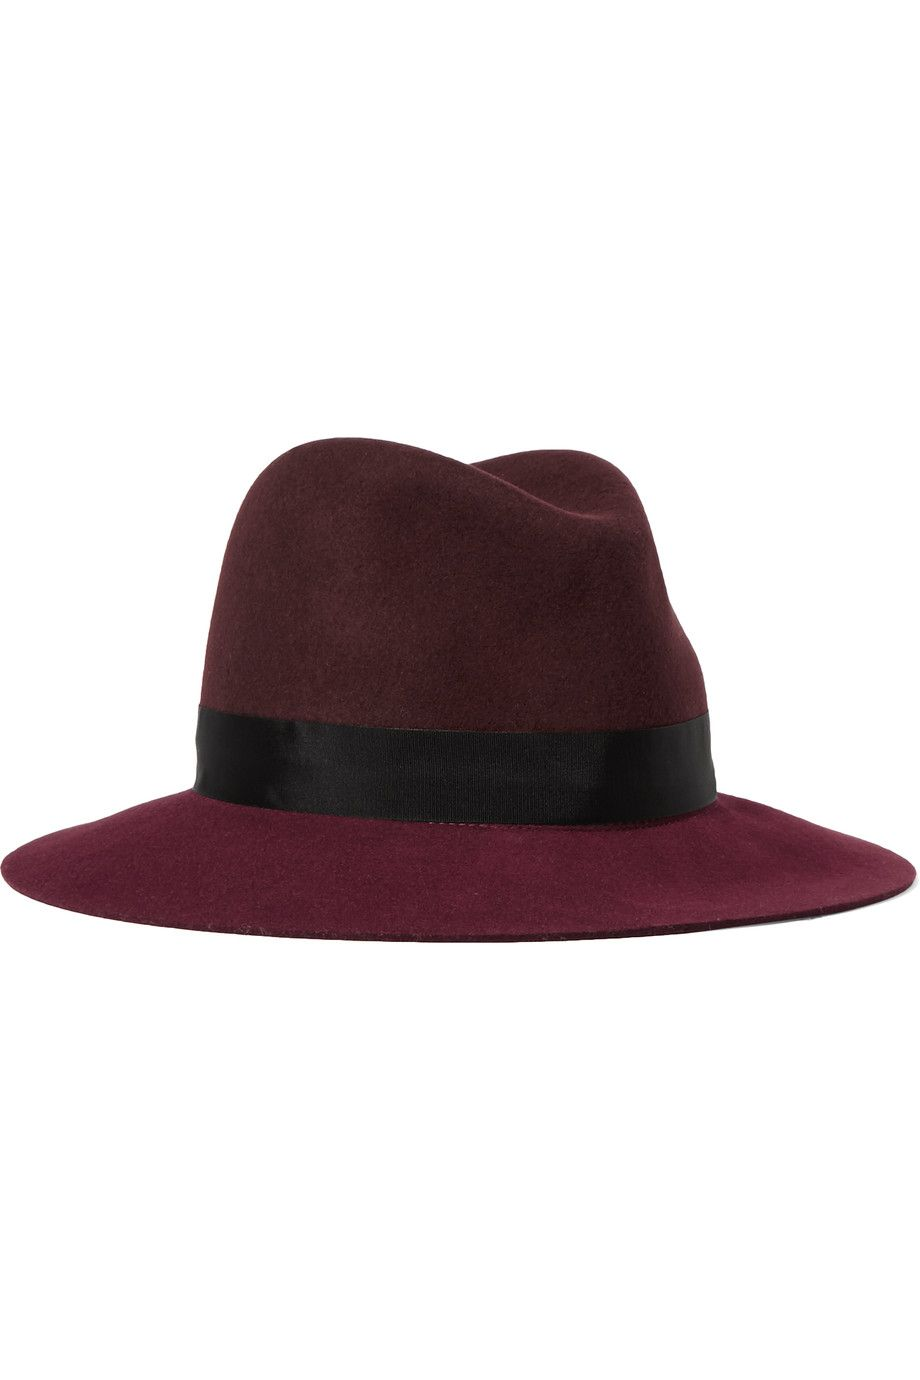 8578c66ff0c99 Shop on-sale rag   bone Two-tone wool-felt fedora. Browse other discount  designer Hats   more on The Most Fashionable Fashion Outlet